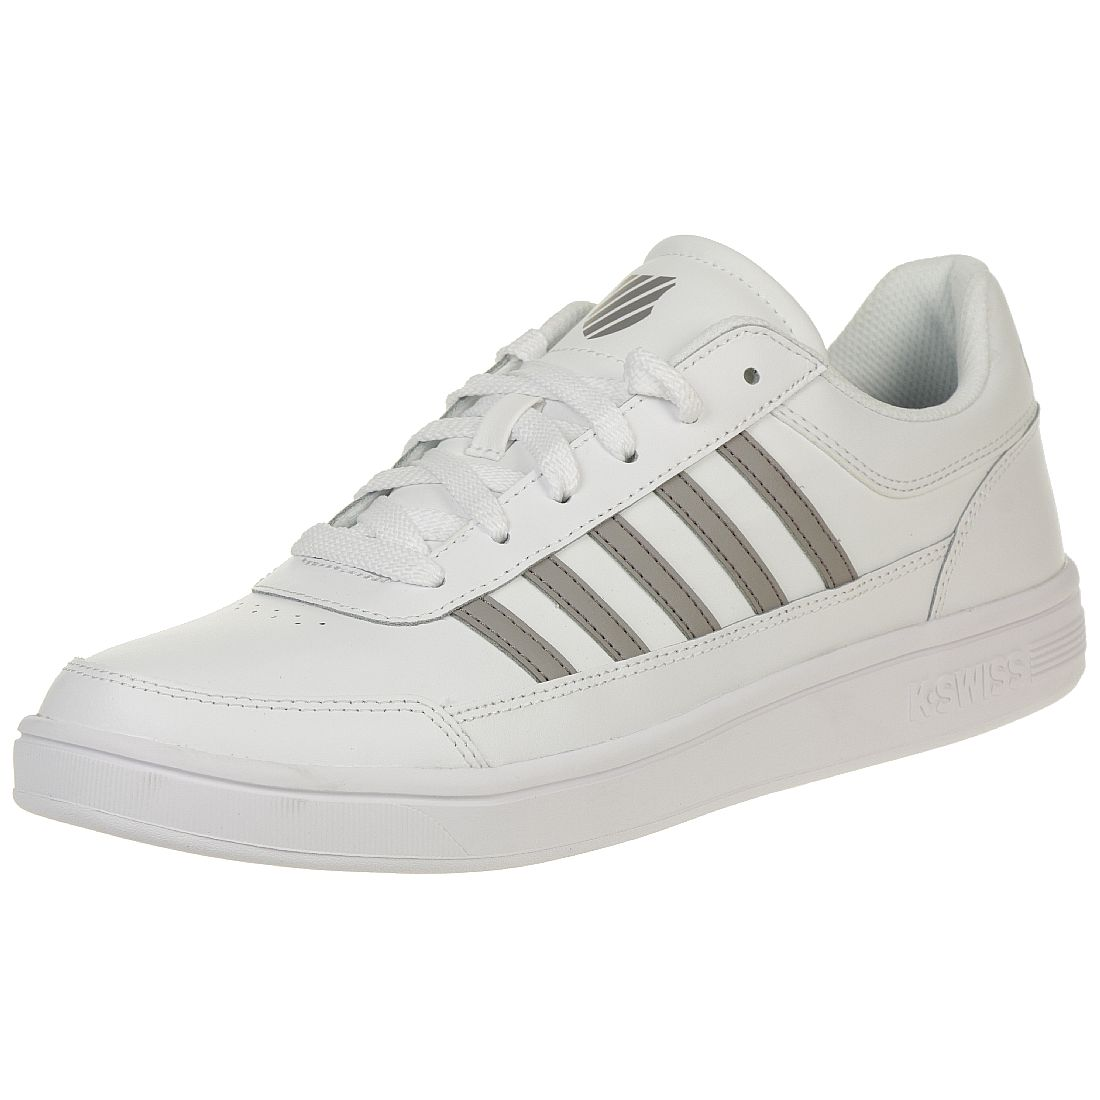 on sale 54b68 7d201 K-SWISS Court Chasseur Schuhe Herren Sneaker weiss 06042-198 ...